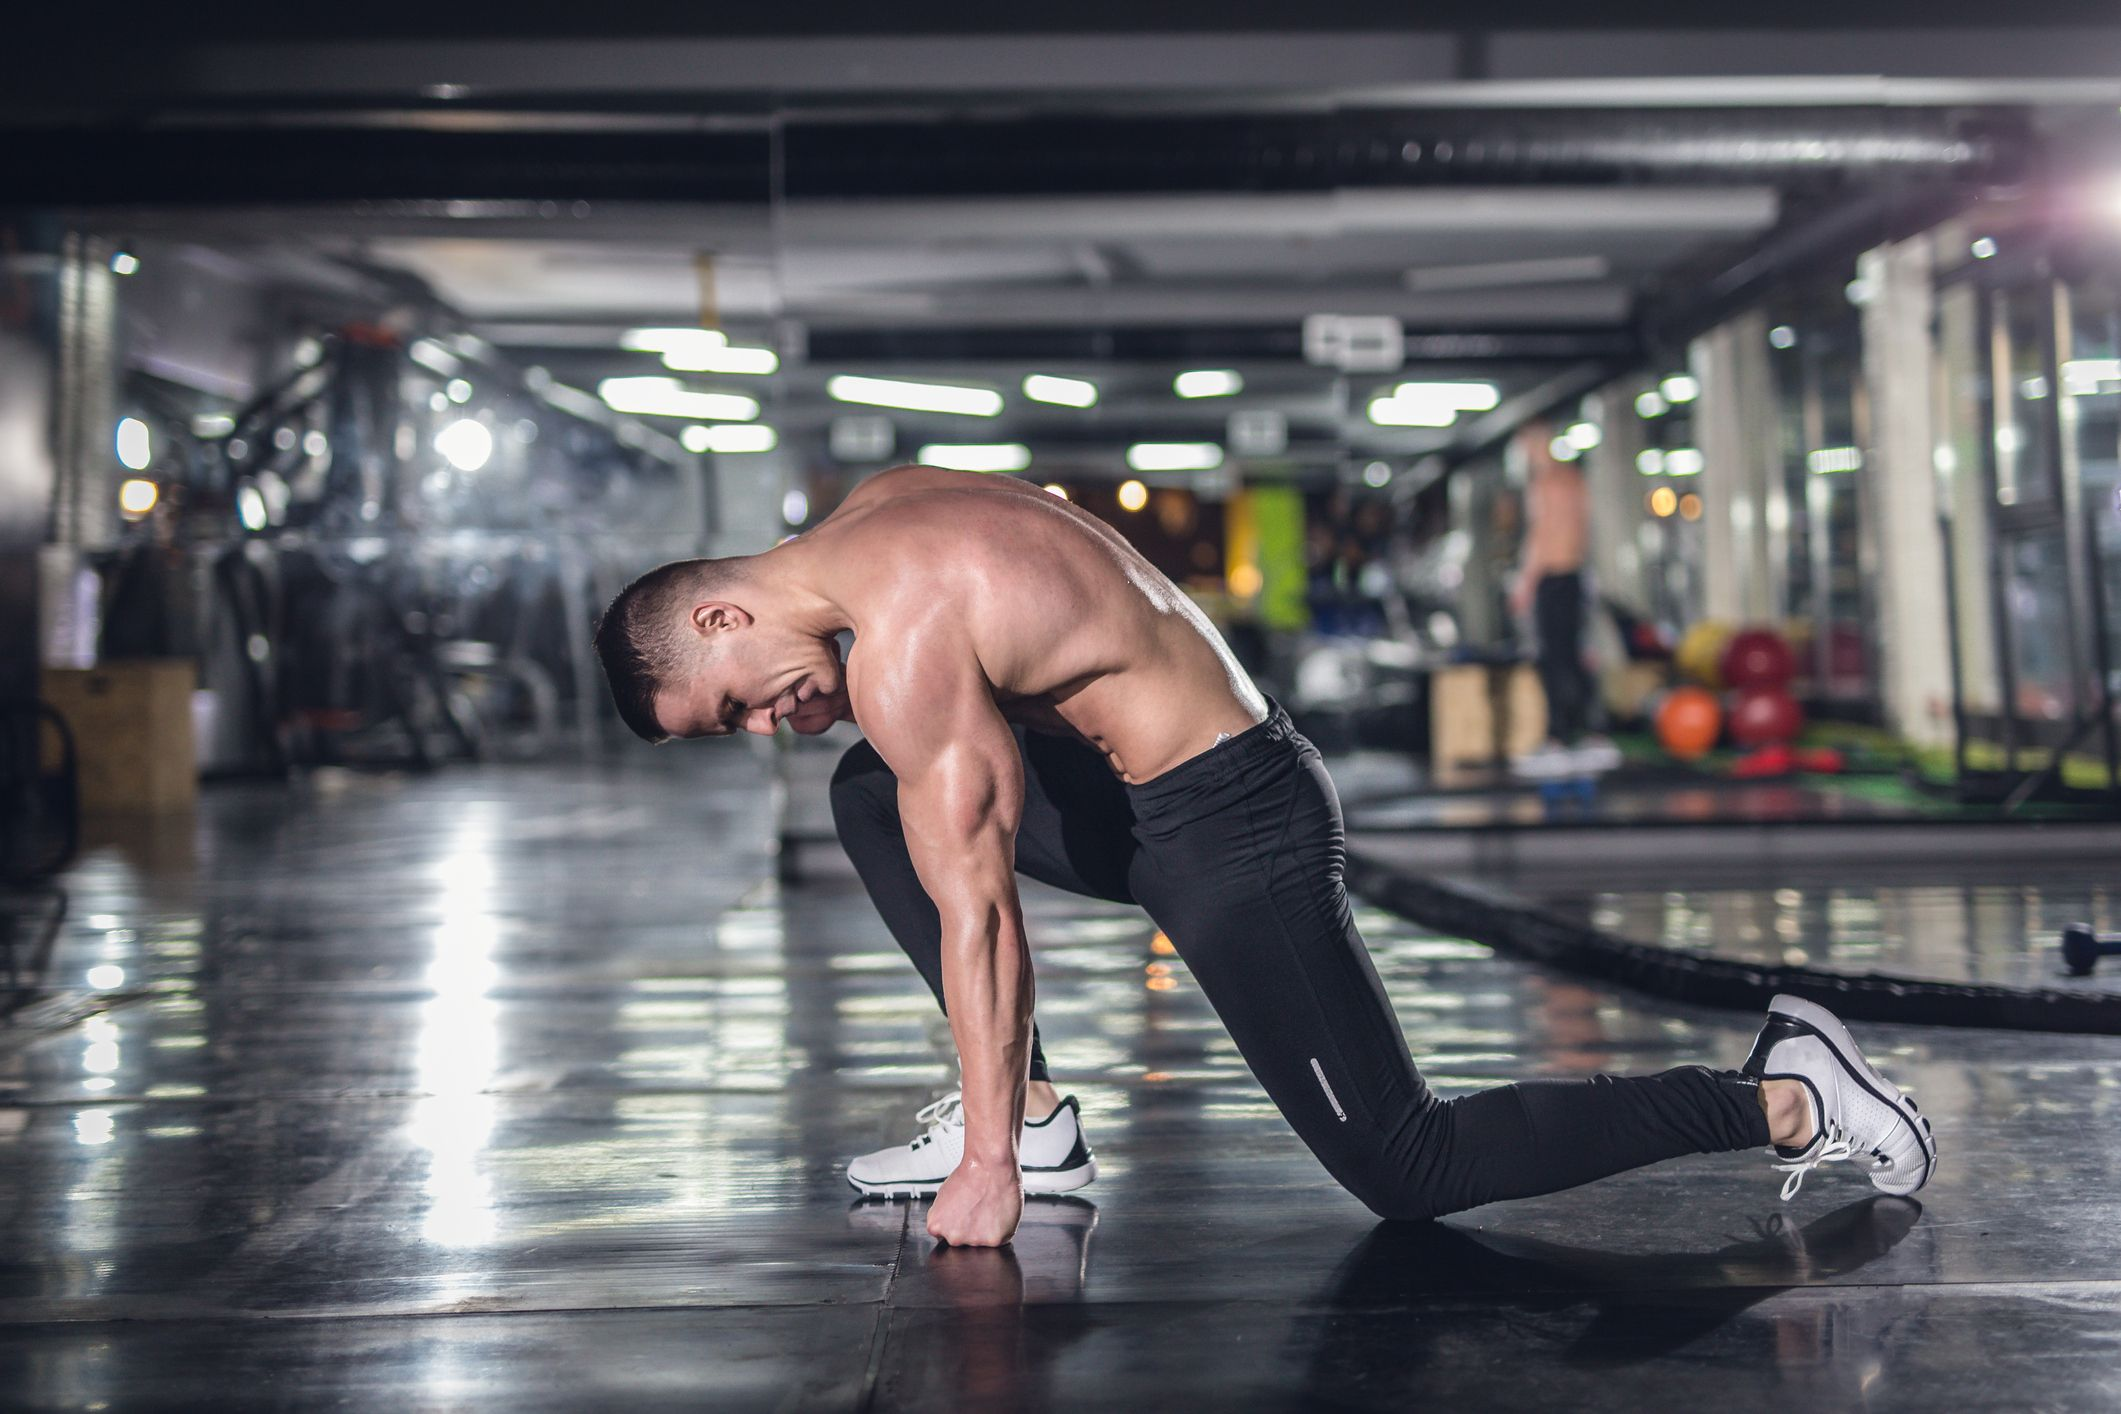 Get Fully Shredded With This 30 Minute Bodyweight Circuit Workout